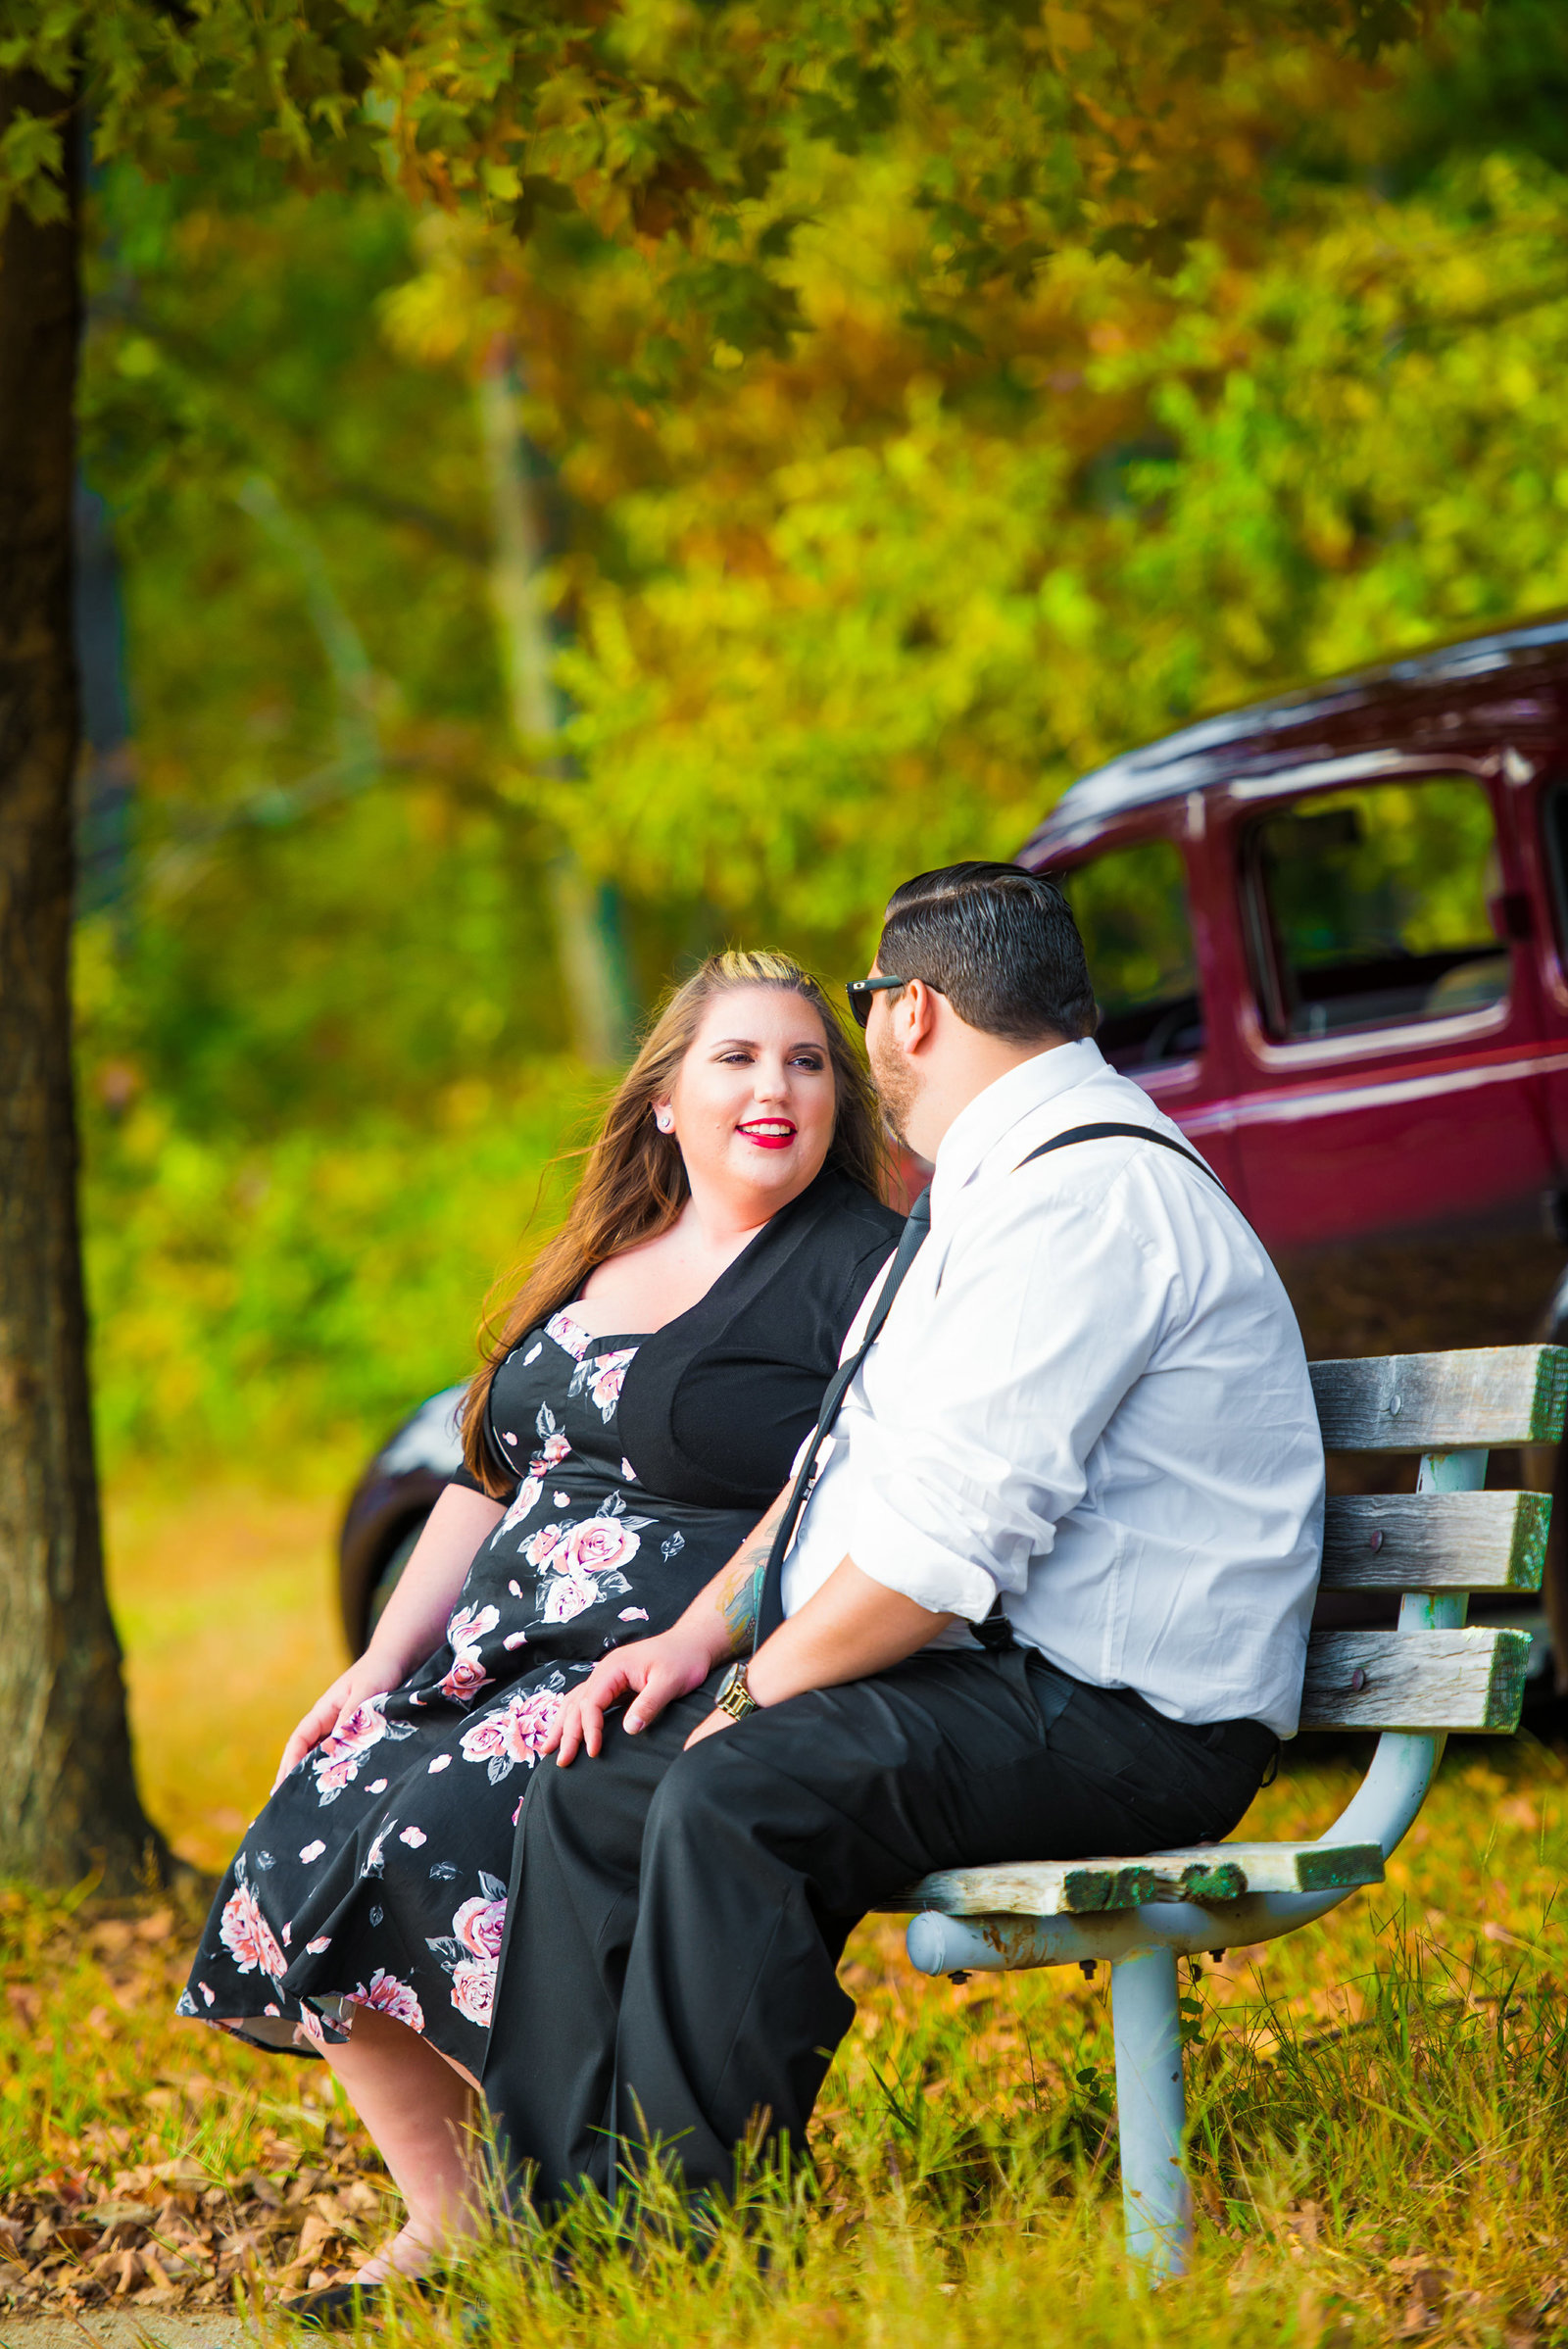 Retro_Pinup_Car_engagement_session_Nj058